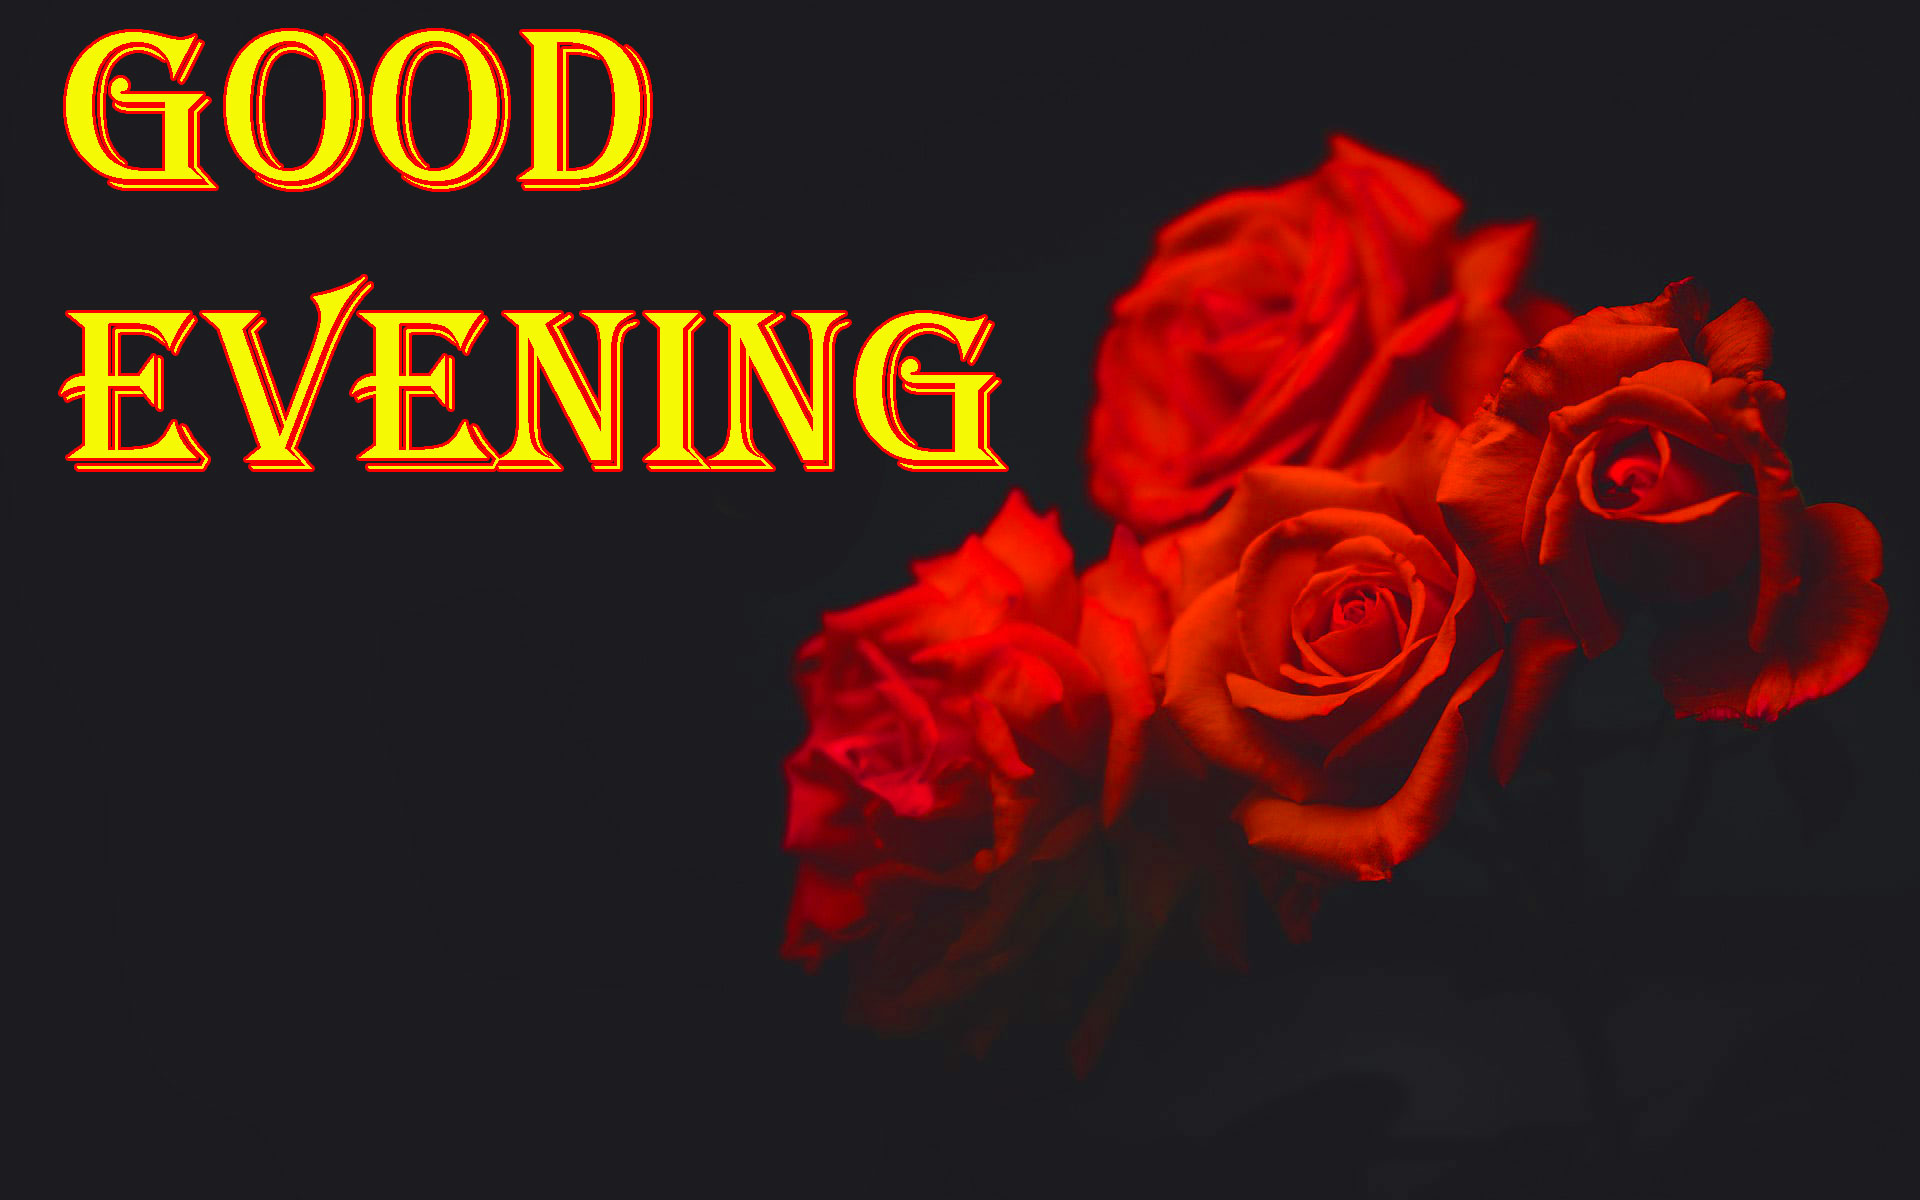 Good Evening Images For Lover - Good Evening Red Rose , HD Wallpaper & Backgrounds